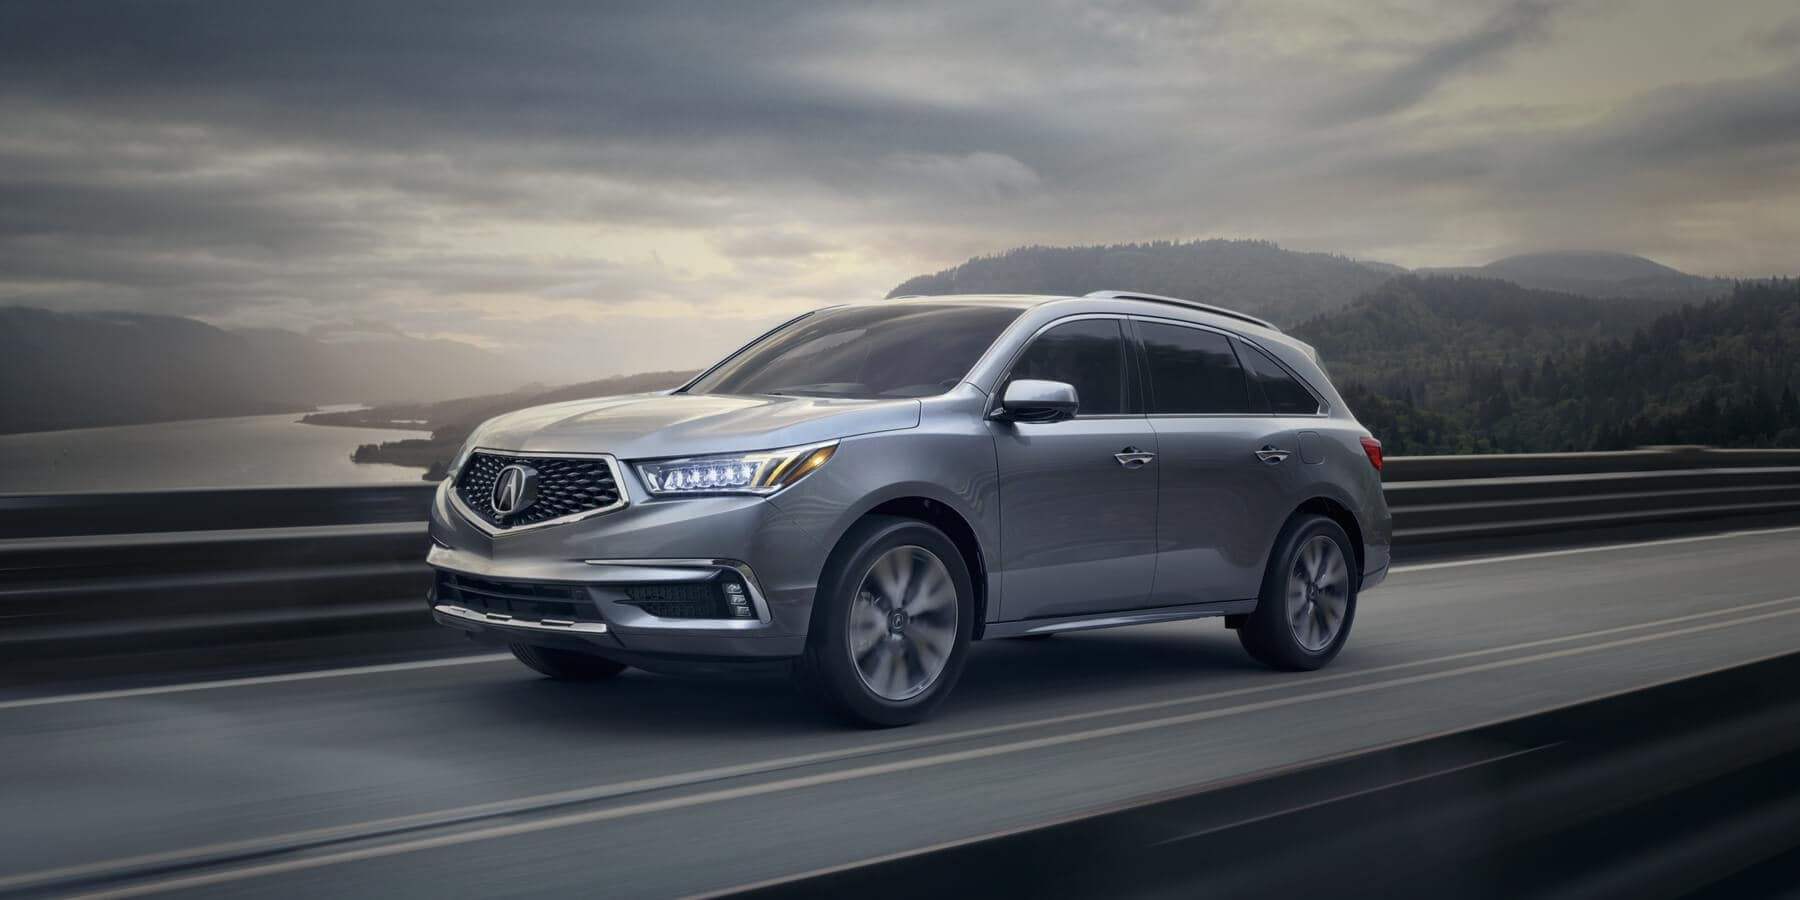 2019 Acura MDX Exterior Front Angle Driver Side Bridge HP Slide